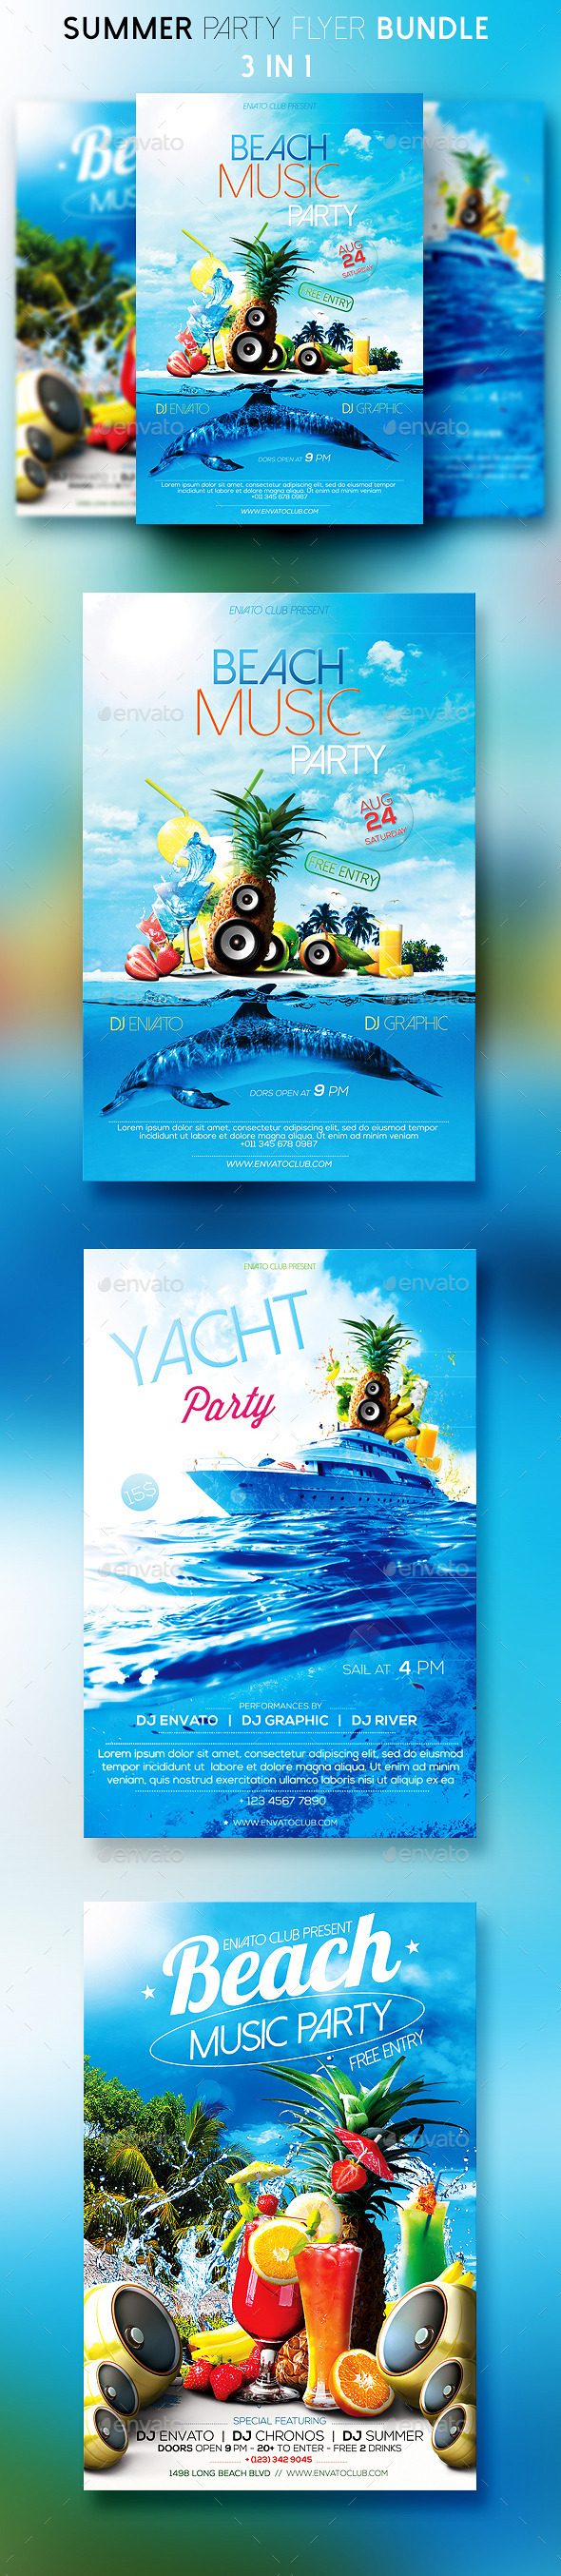 Summer Party Flyers Bundle - Clubs & Parties Events